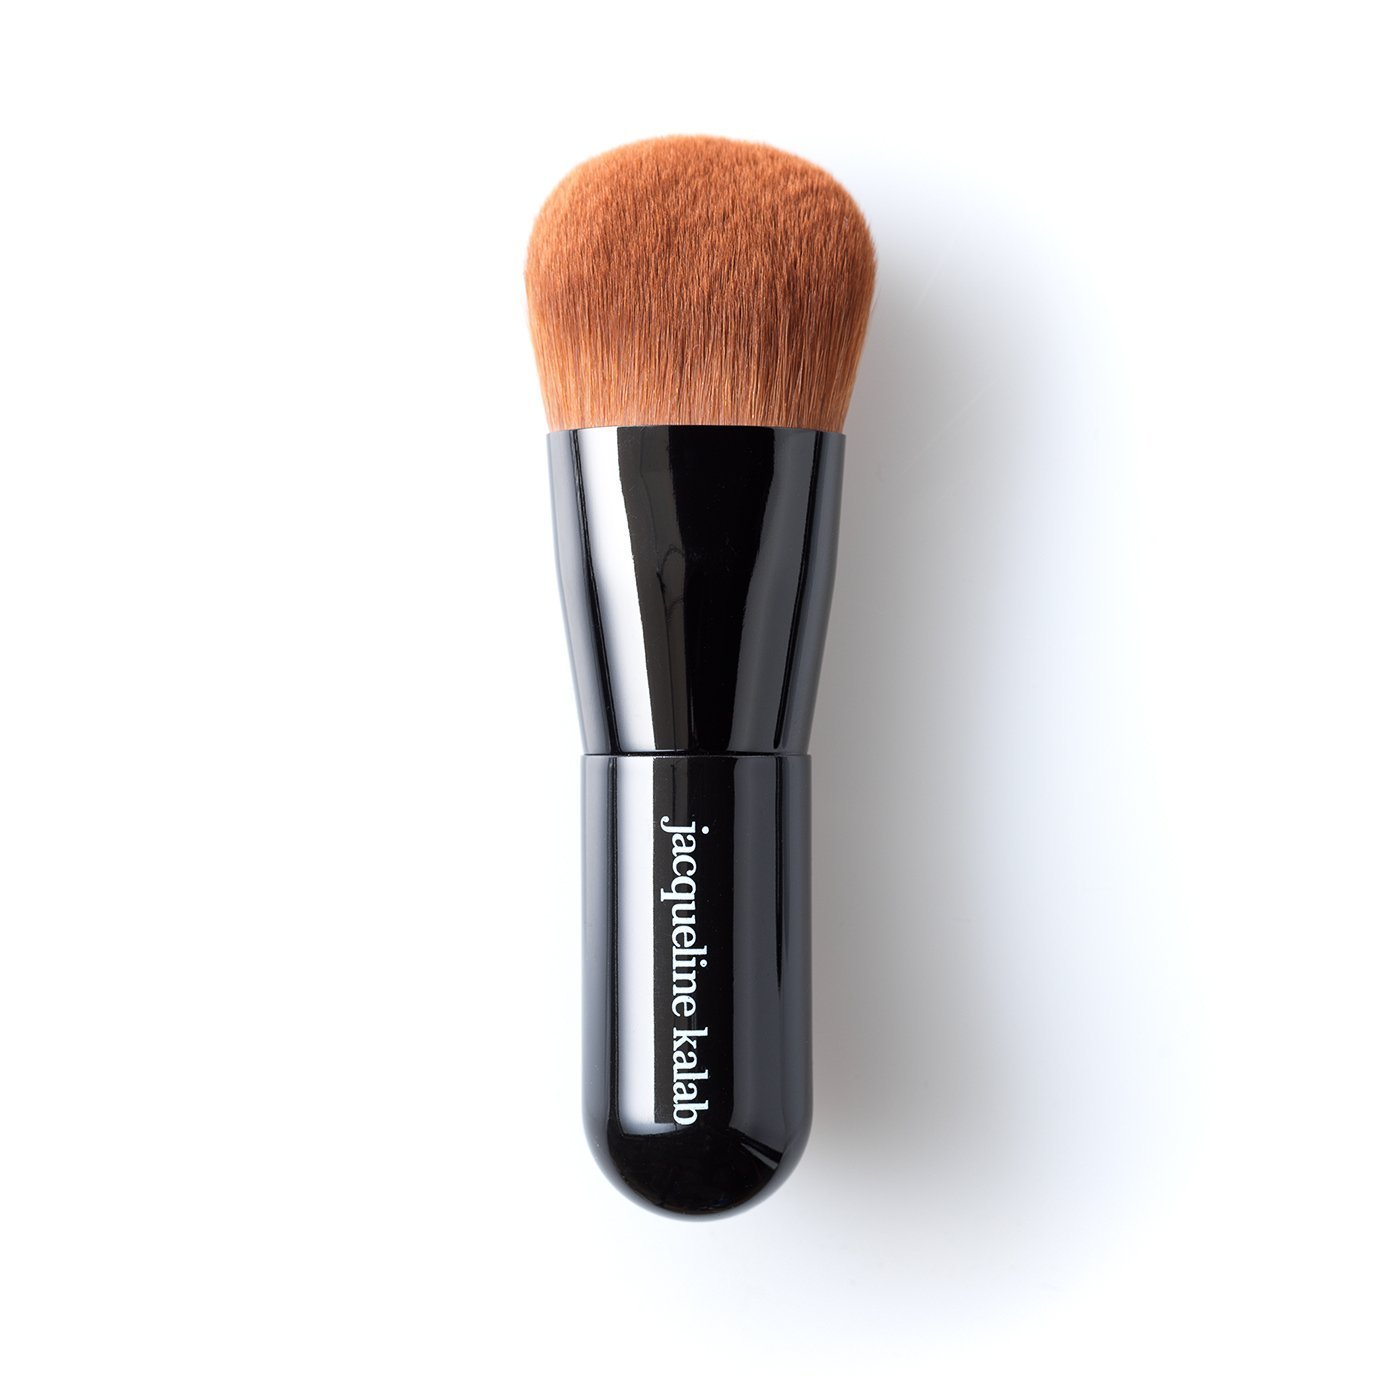 Magic Foundation Brush - The Most Addictive, Most Useful, Most Amazing, Most Can't-Live-Without Makeup Brush on the Market, by Jacqueline Kalab: Beauty